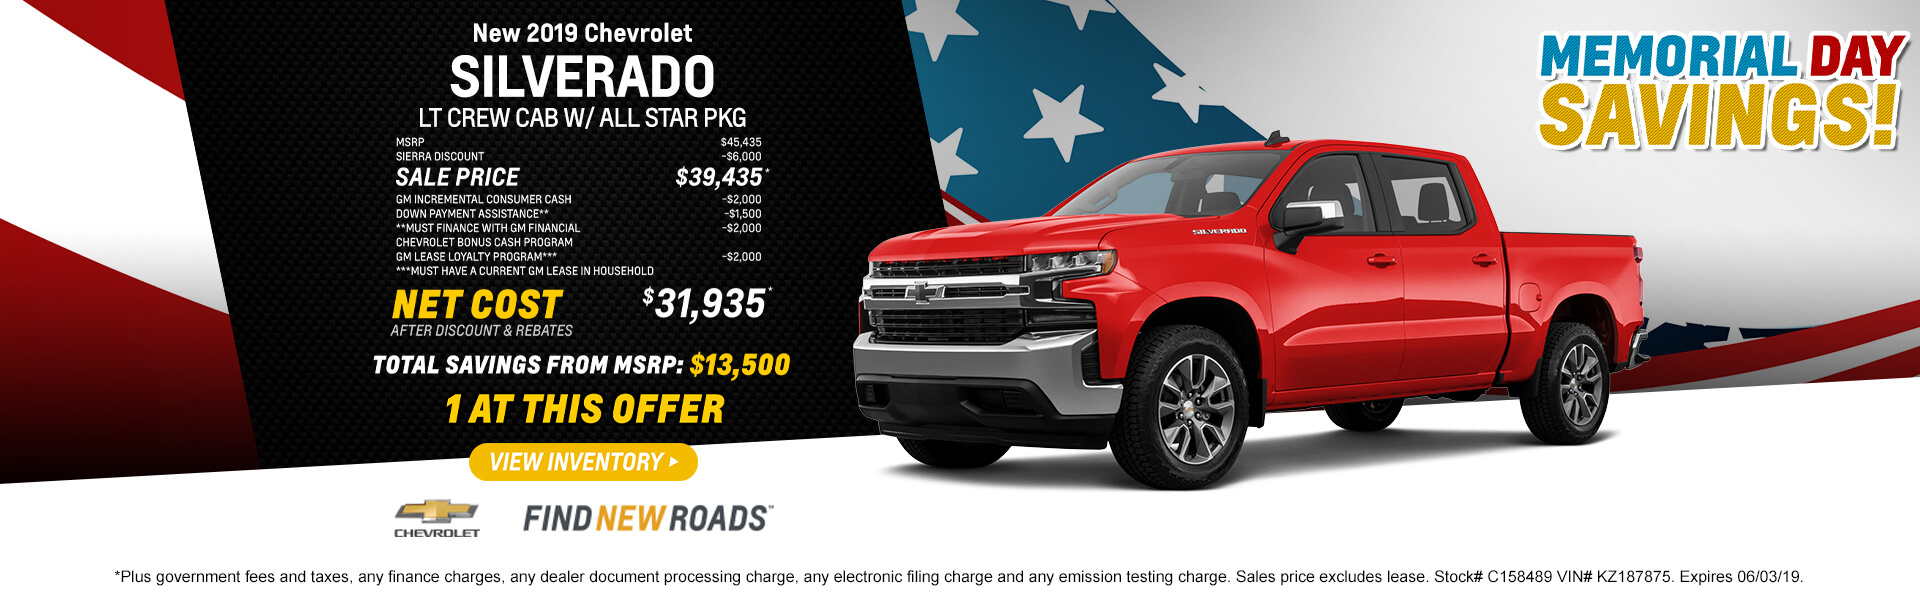 2019 CHEVROLET SILVERADO LT CREW CAB W/ ALL STAR PKG  MSRP  $45,435 SIERRA DISCOUNT -$6,000 SALE PRICE $39,435* GM INCREMENTAL CONSUMER CASH -$2,000 DOWN PAYMENT ASSISTANCE**       -$1,500 **Must finance with GM financial CHEVROLET BONUS CASH PROGRAM -$2,000 GM LEASE LOYALTY PROGRAM***  -$2,000 ***Must have a current GM lease in household  NET COST AFTER DISCOUNT AND REBATES $31,935*  1 at this offer  *Plus government fees and taxes, any finance charges, any dealer document processing charge, any electronic filing charge and any emission testing charge. Sales price excludes lease. Stock# C158489 VIN# KZ187875. Expires 06/03/19.